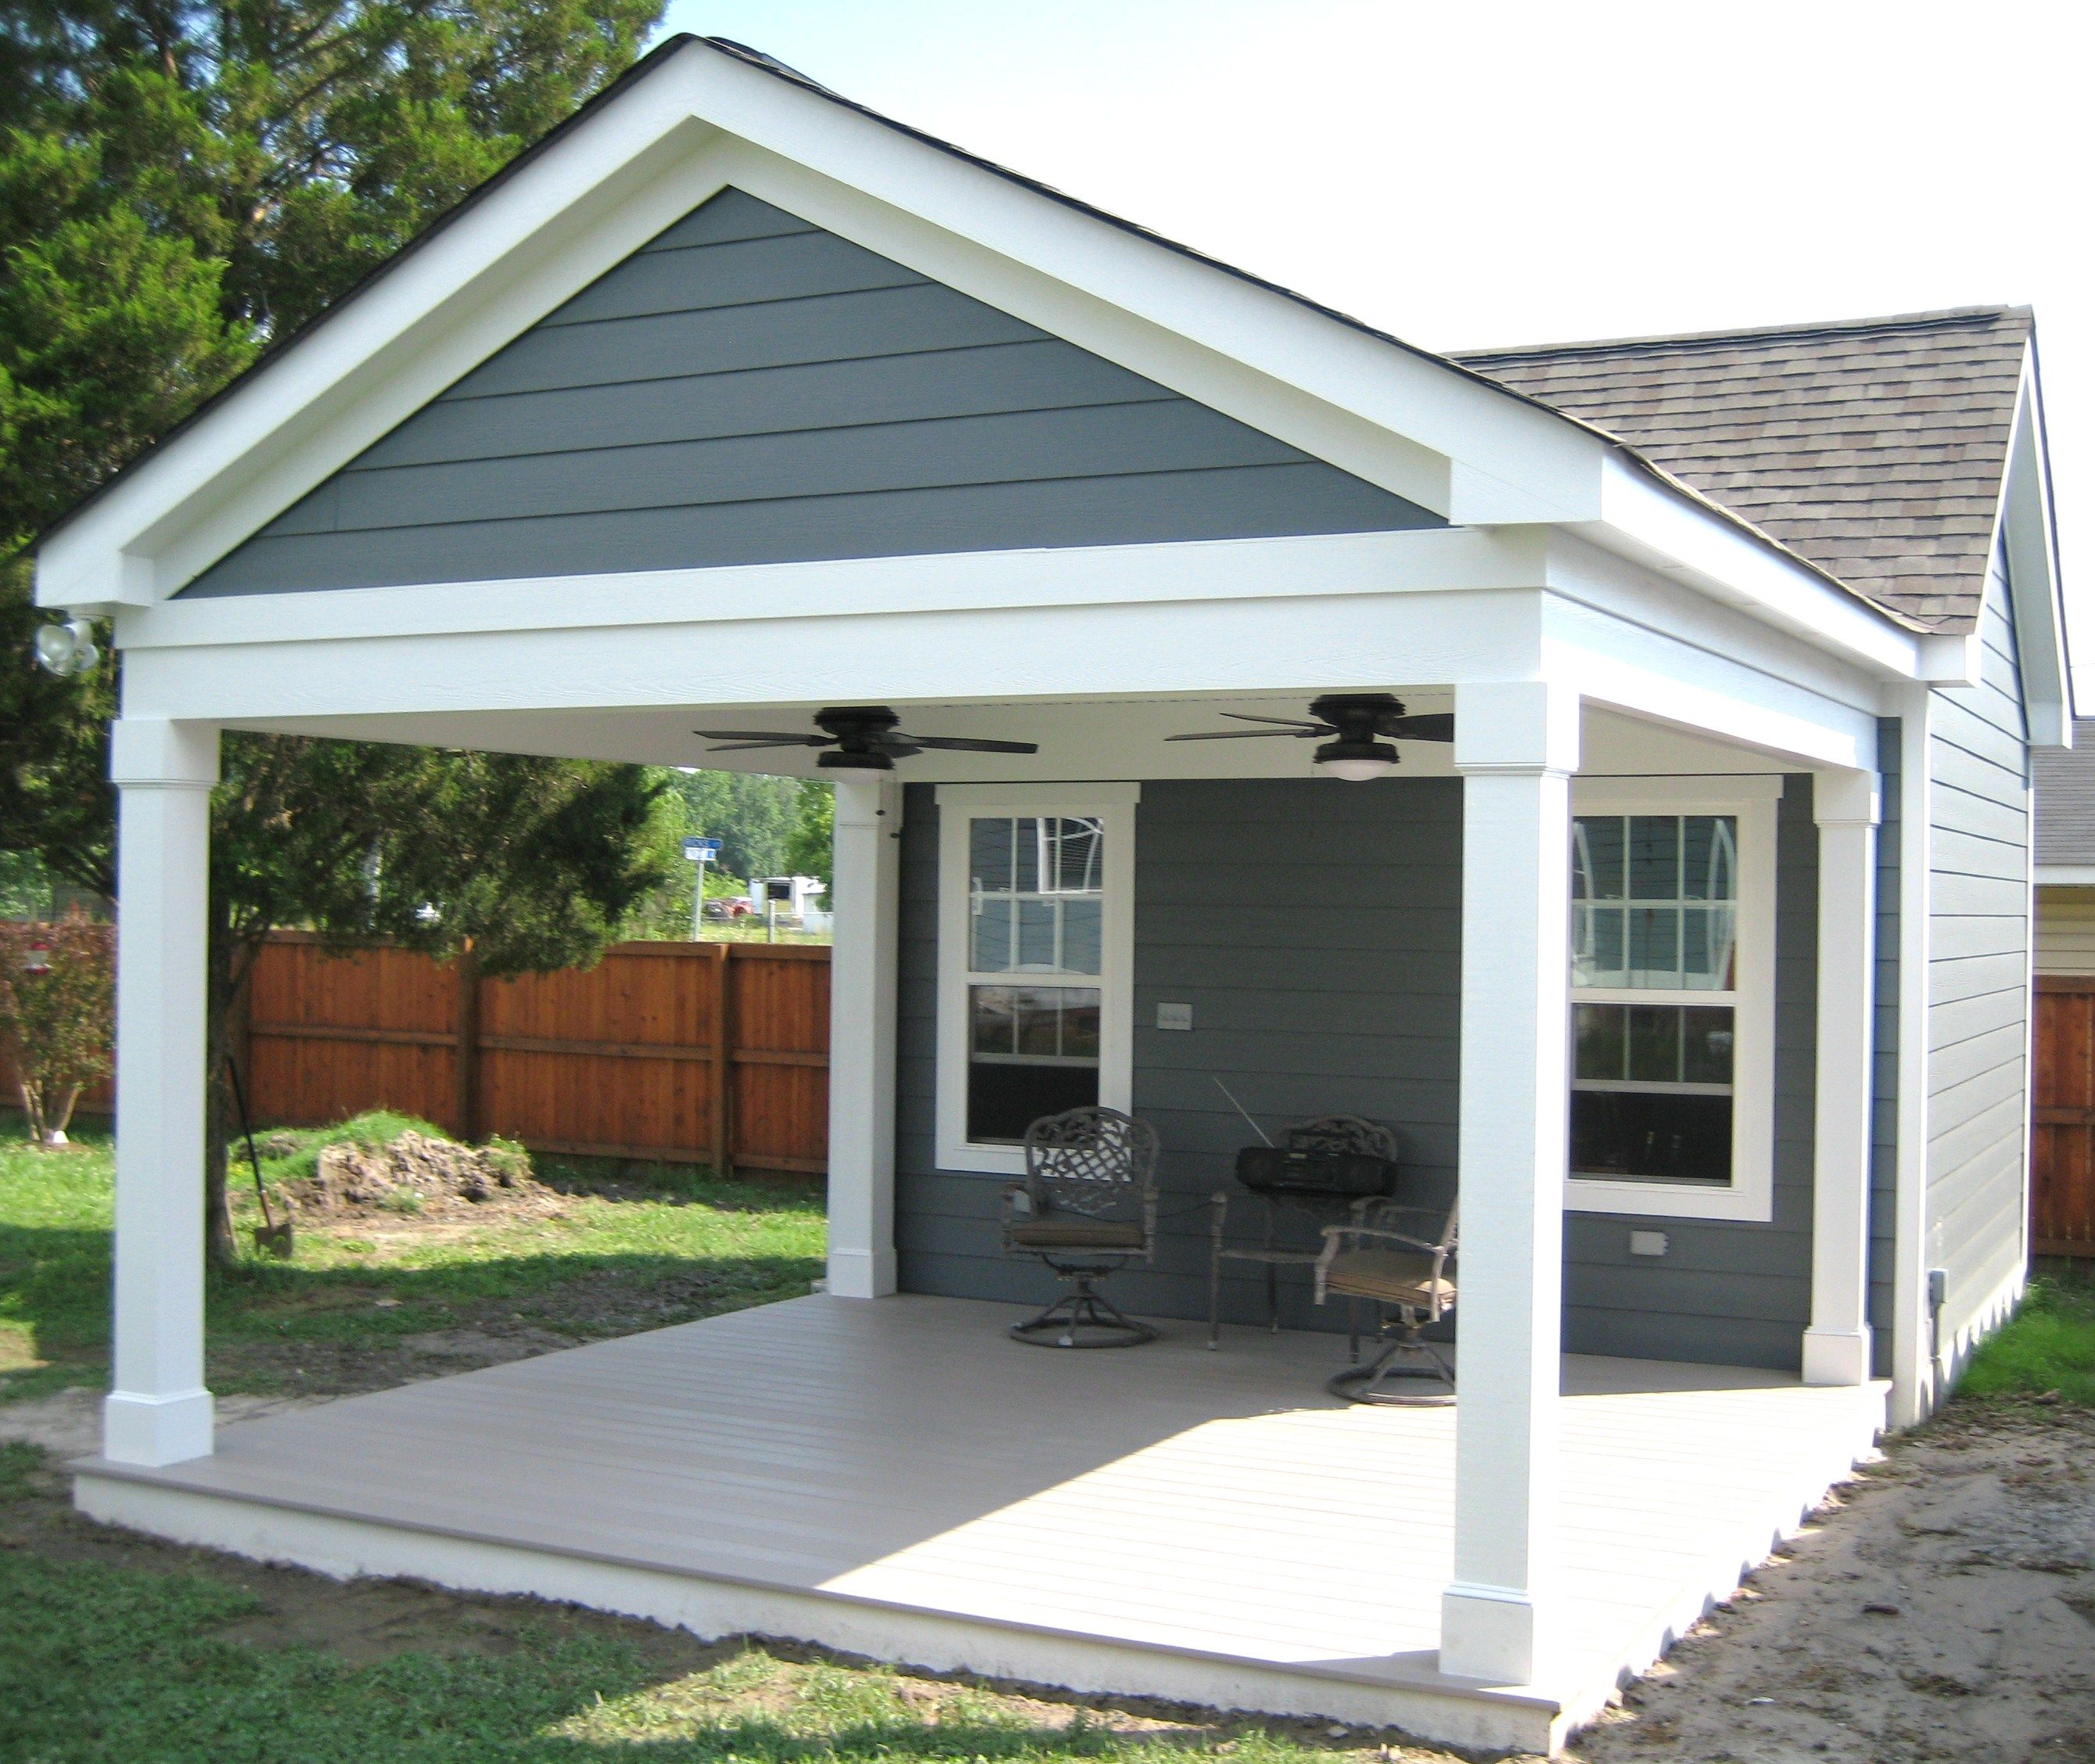 garage plan w2992 16 small garage plan for 1 car cute style garage with porch outbuilding with covered porch